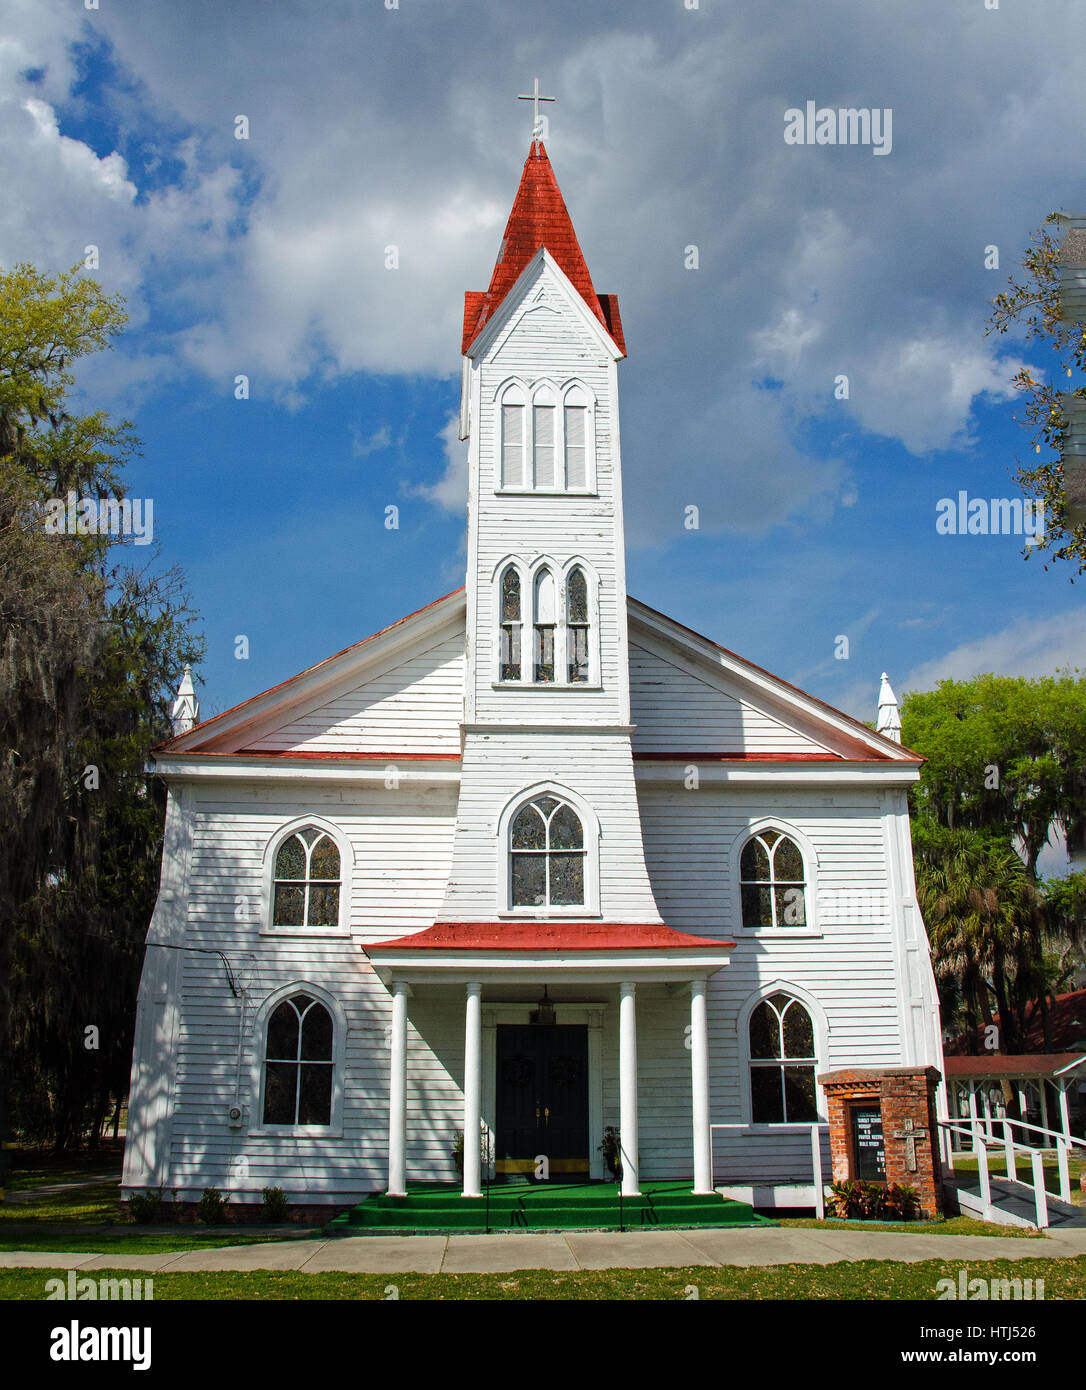 Tabernacle Baptist Church in Historic District of Beaufort, South Carolina dates to 1840 and served as an African - Stock Image